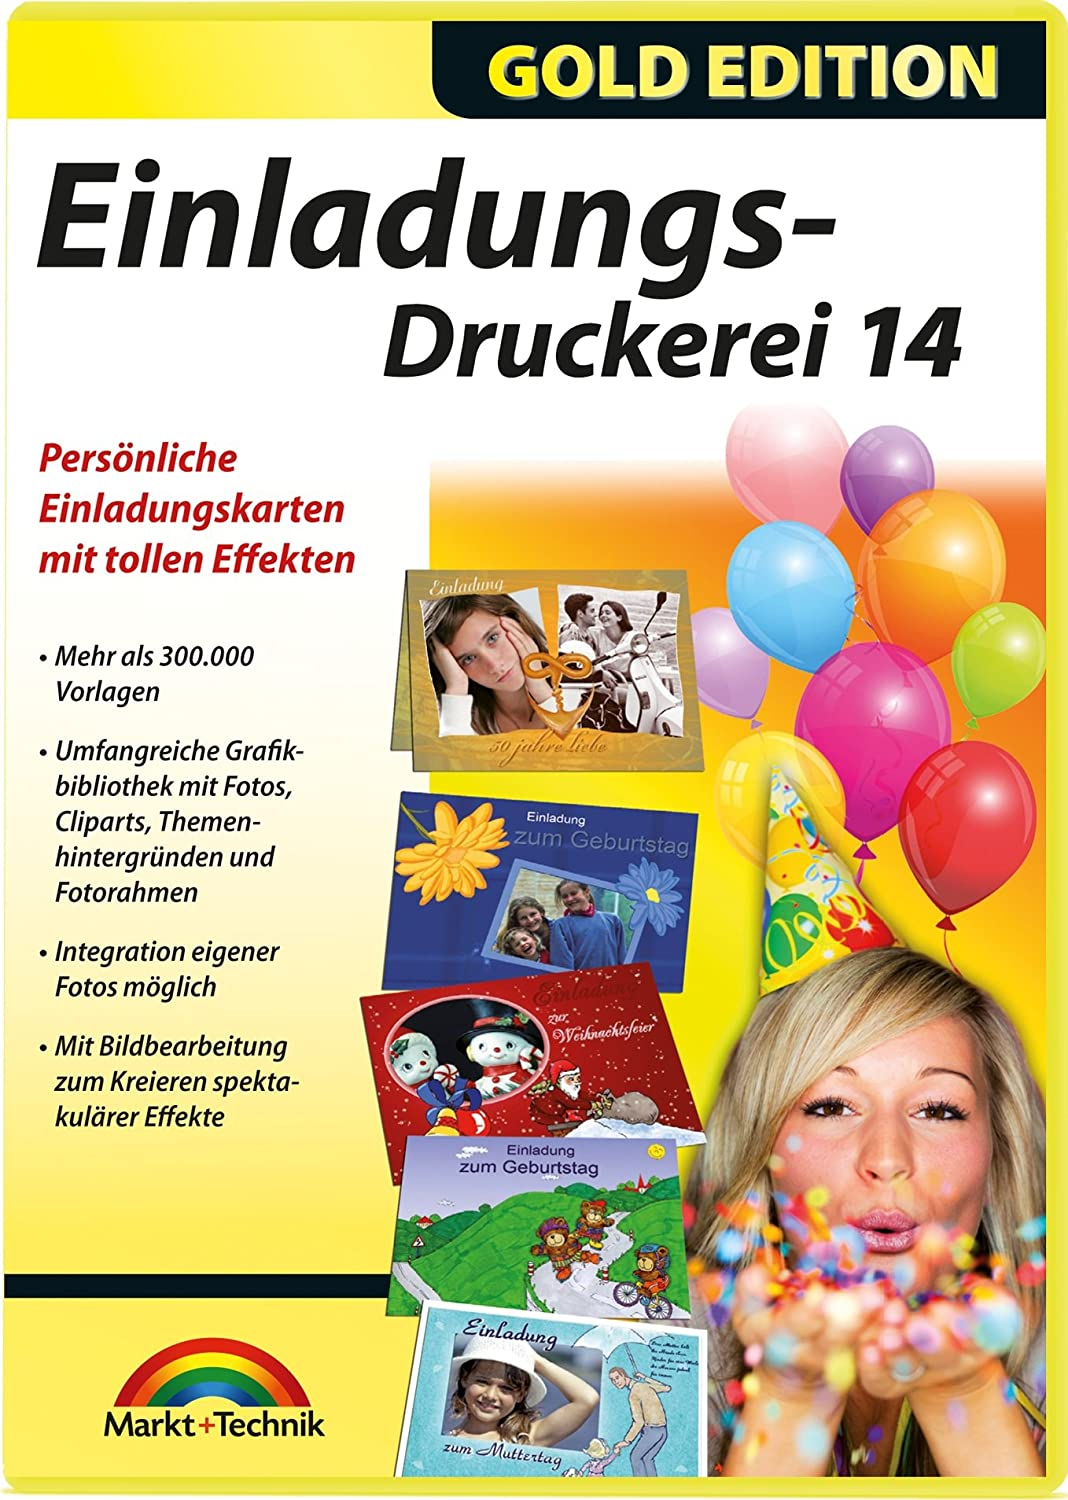 Einladungs-Druckerei 14 - für Windows 10 / 8 / 7: Amazon.de: Software